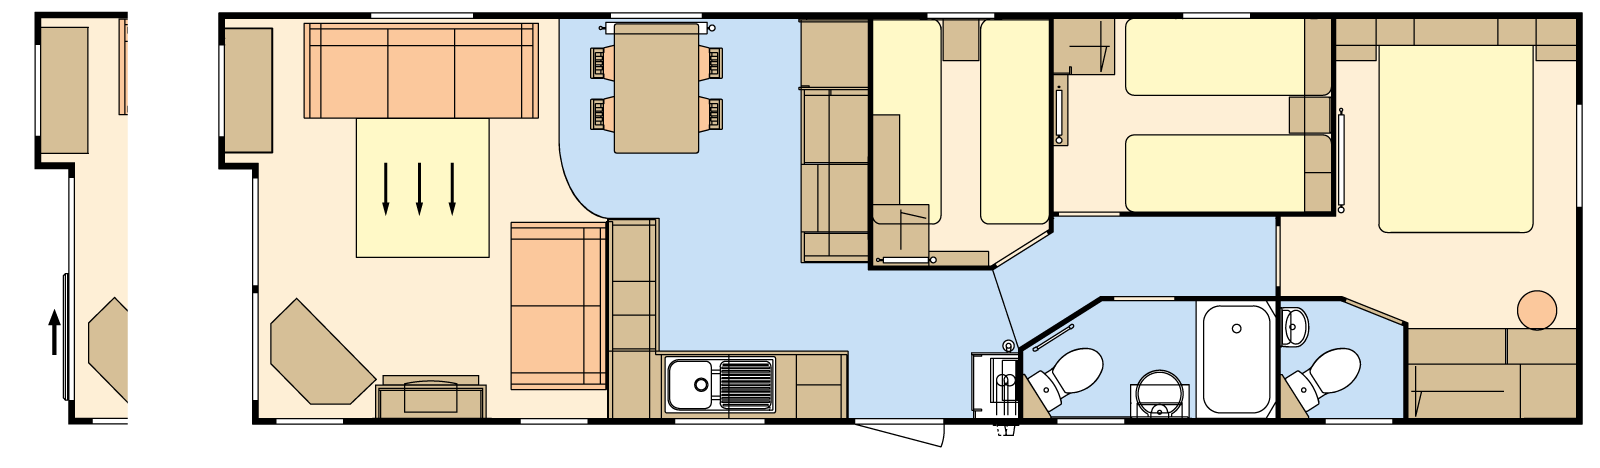 38 × 12 – 3 bedroom/8 berth